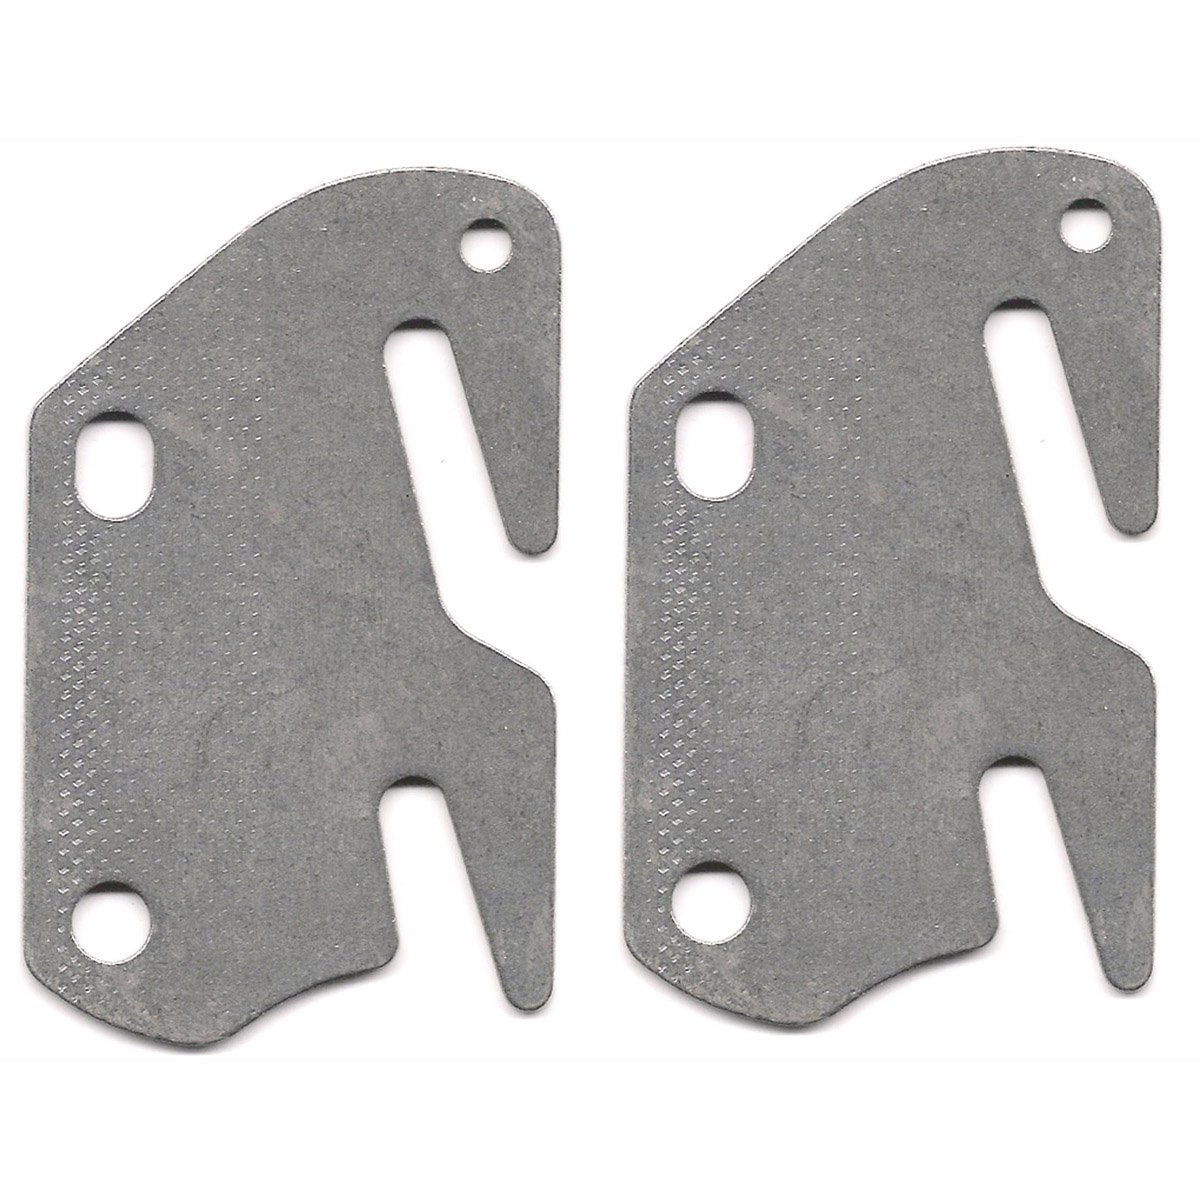 2 bed rail double hook plates fits 2 bracket or bed post flat 13 ga steel made in usa